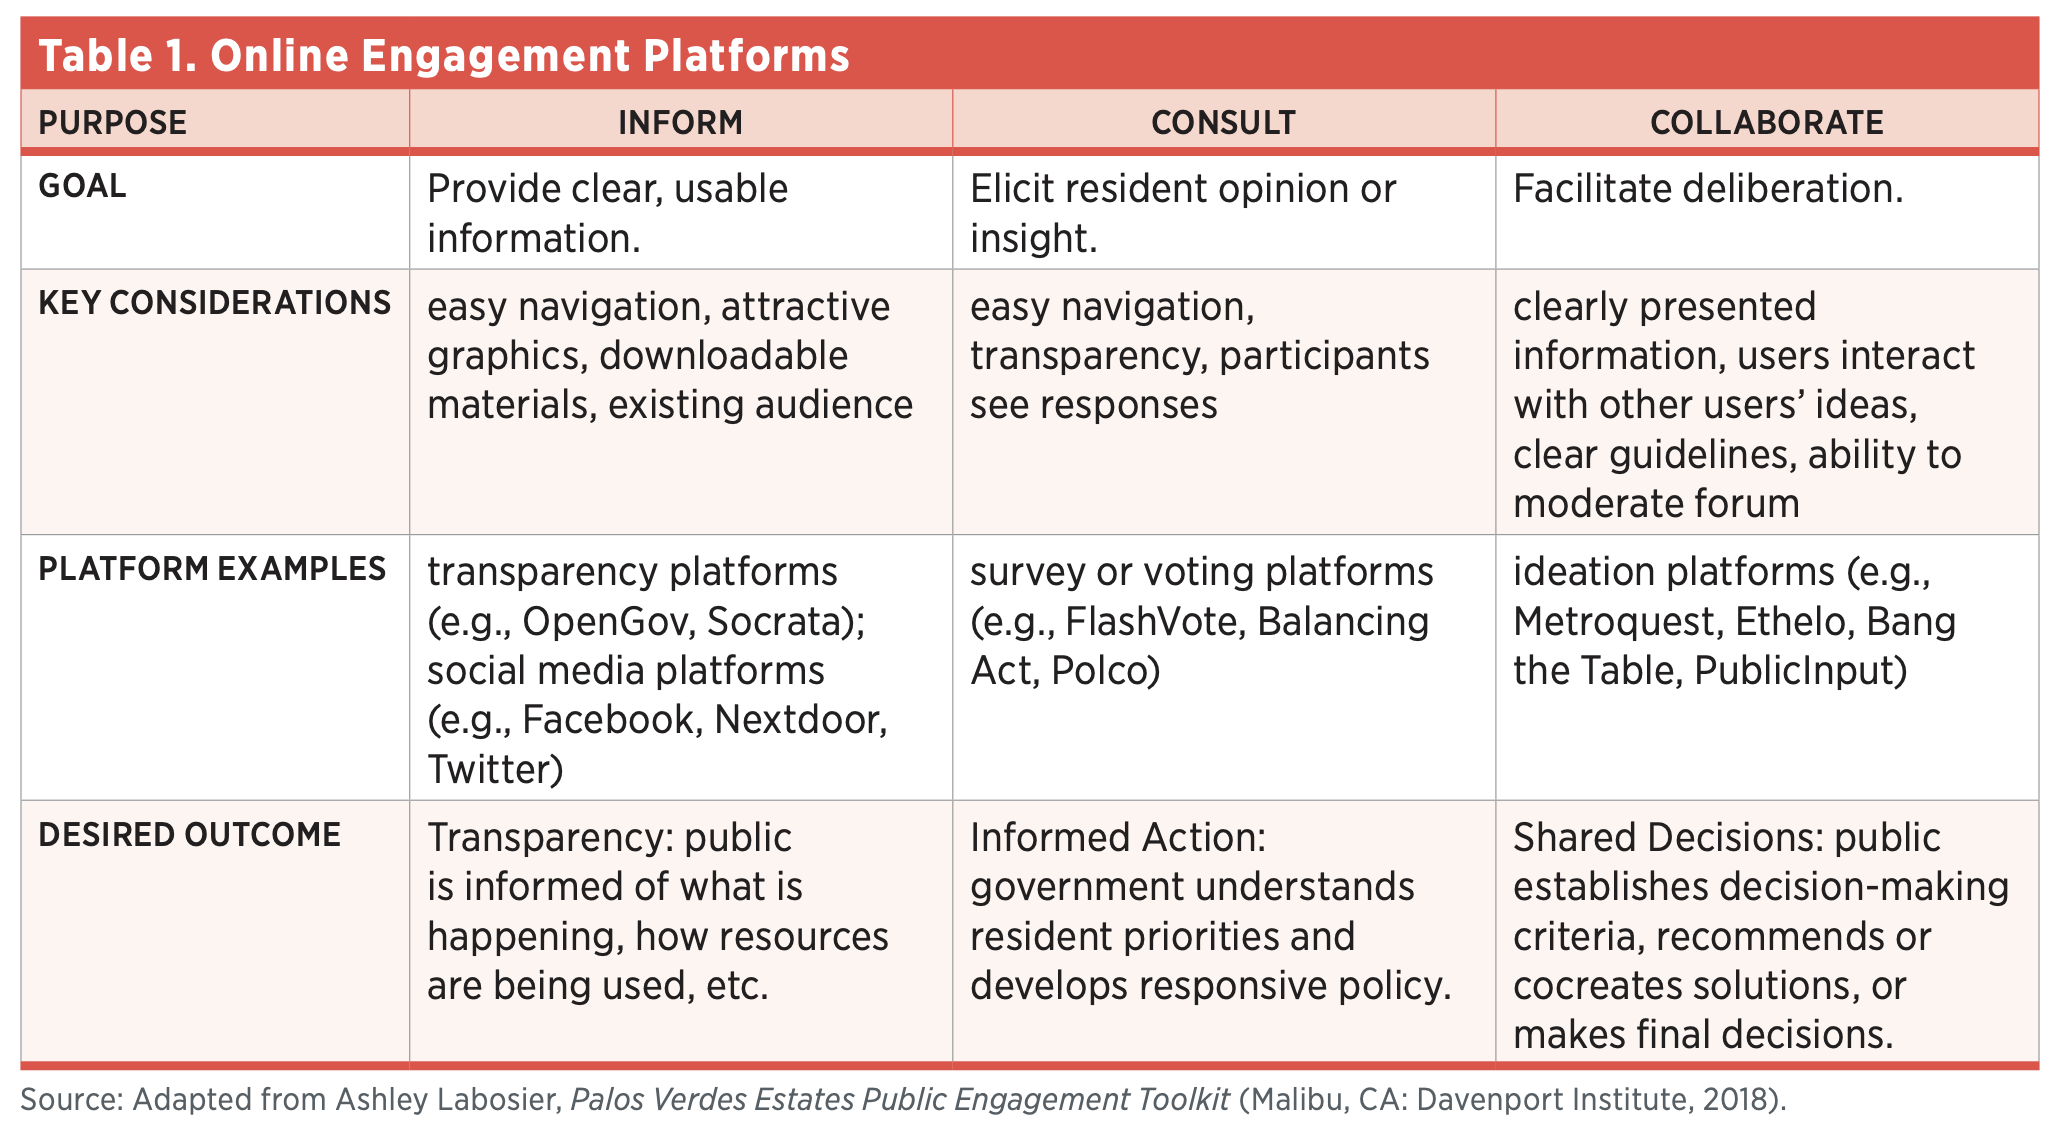 Table 1. Online Engagement Platforms